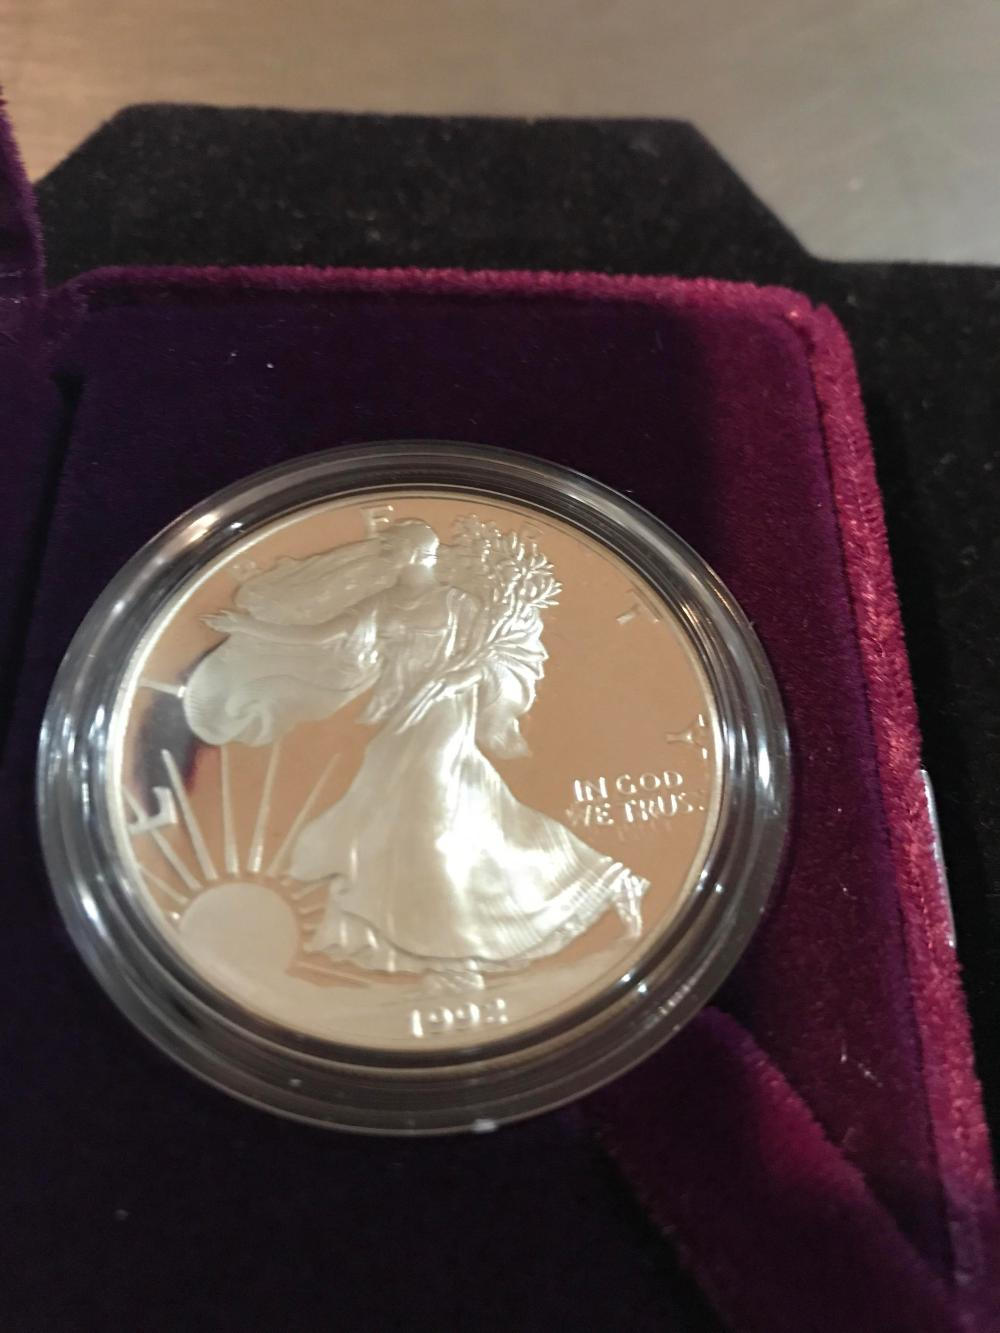 Lot 153: 1992 silver American eagle one dollar coin proof